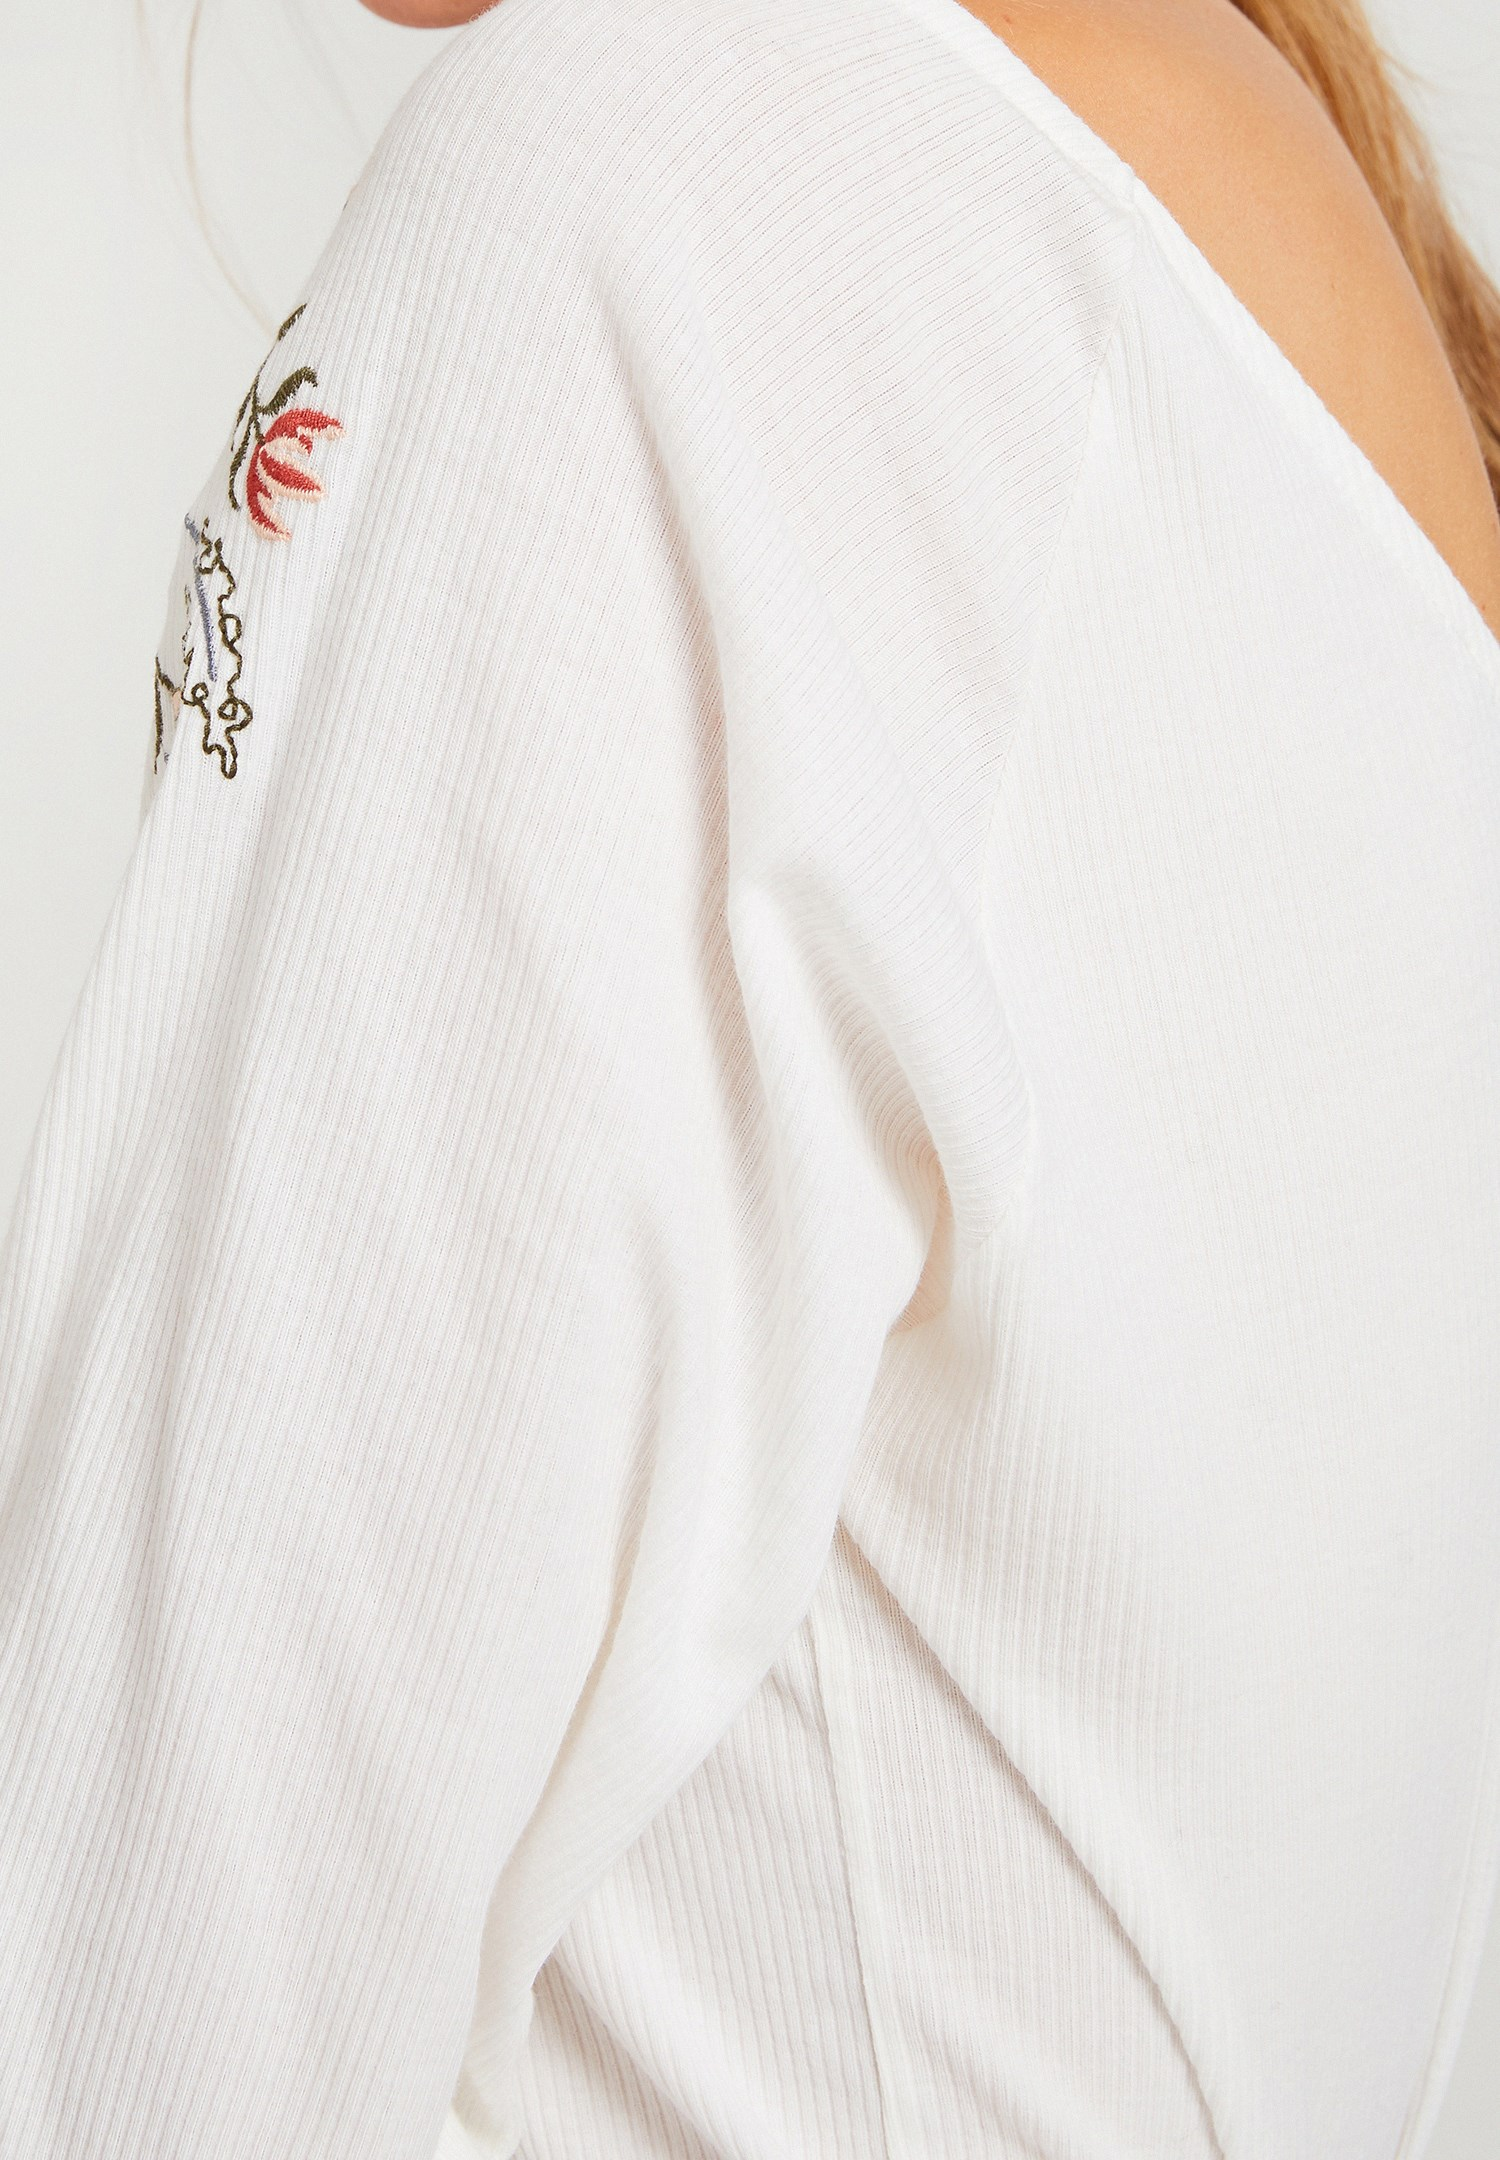 Women Cream Blouse with Embroidery Detail